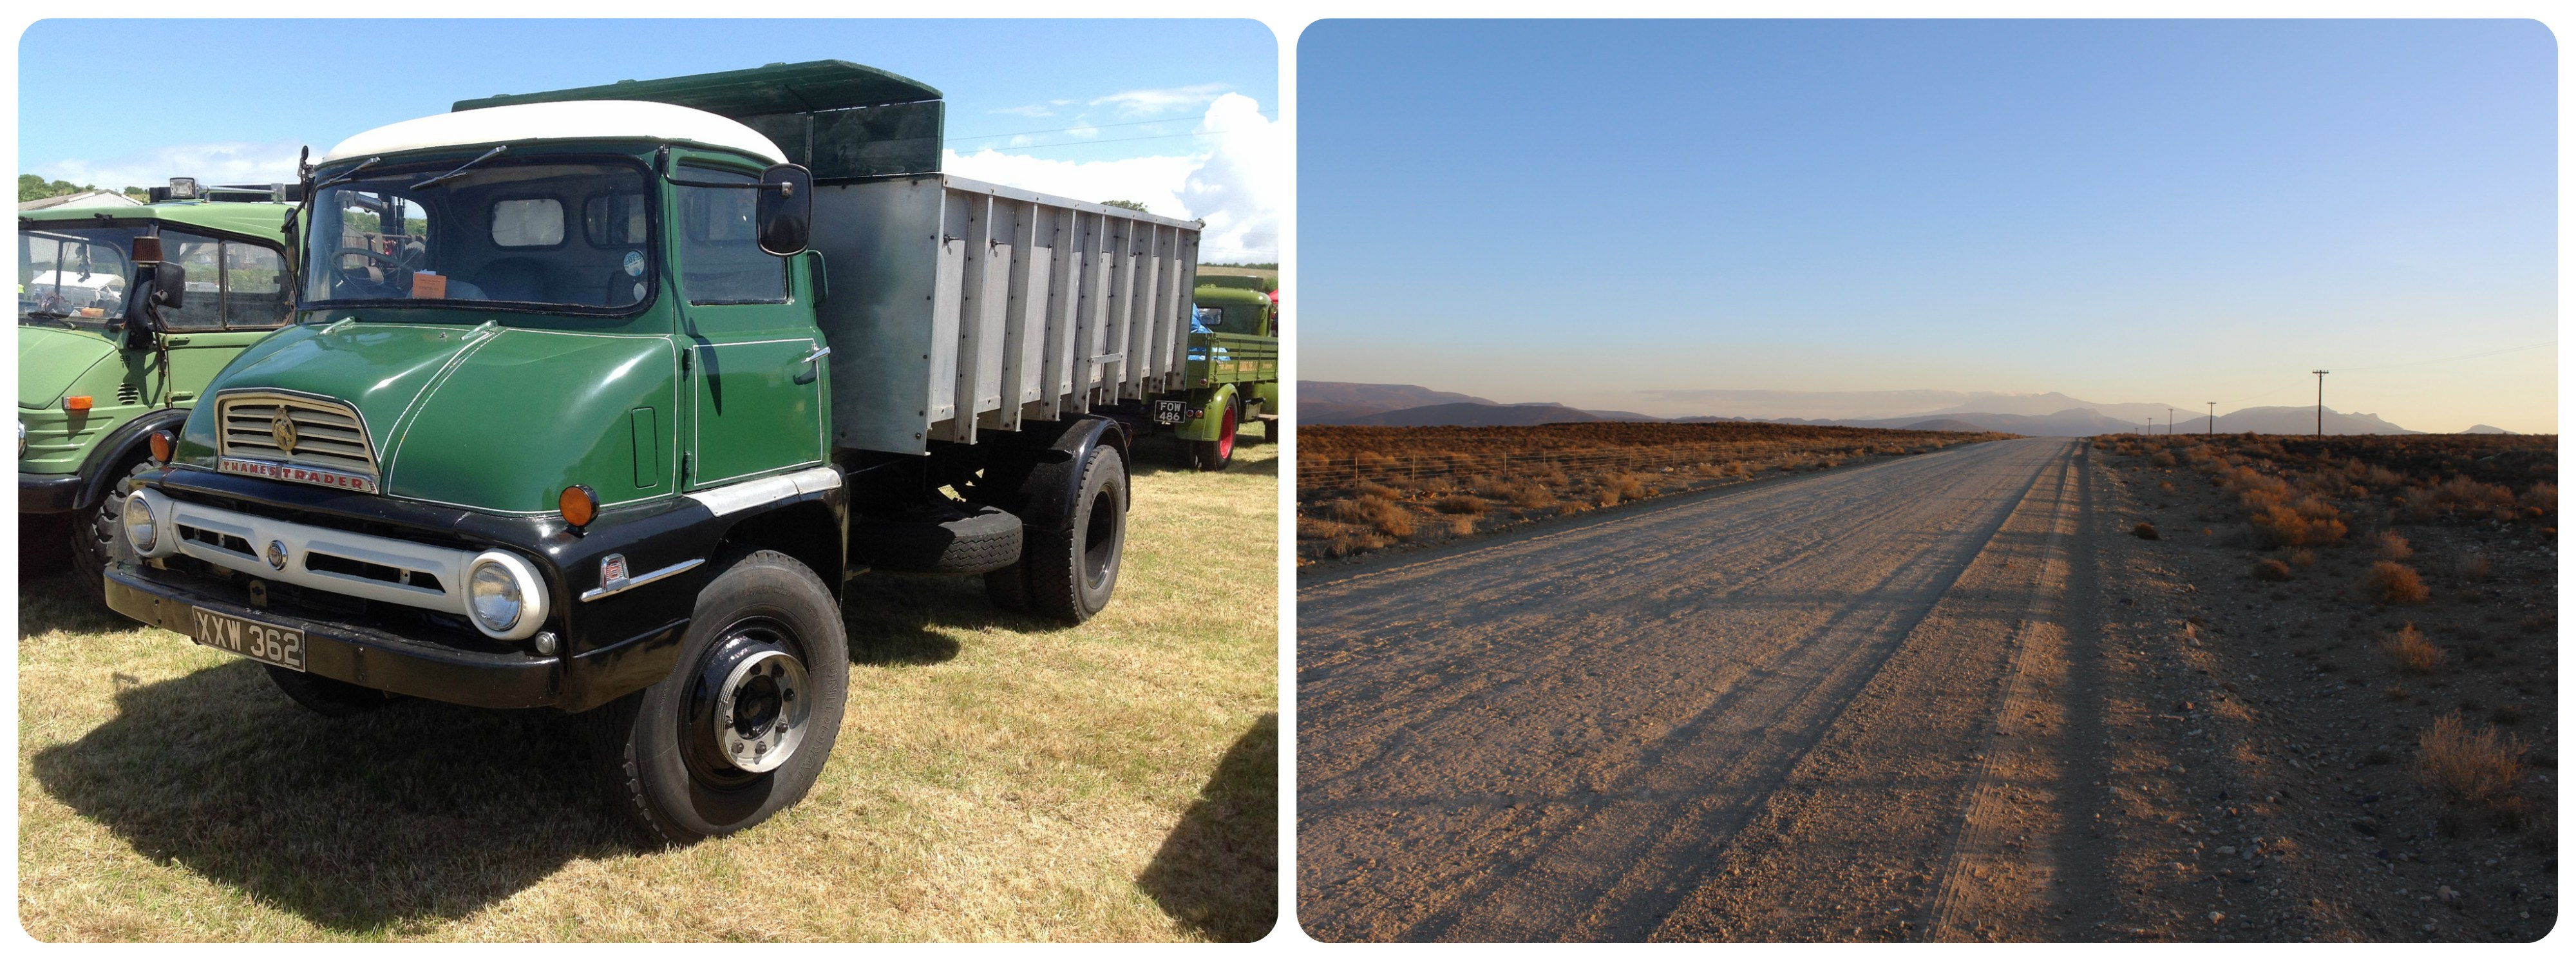 An example of a Ford Thames truck like the ghostly one which has been seen on the Karoo road near Sadawa.